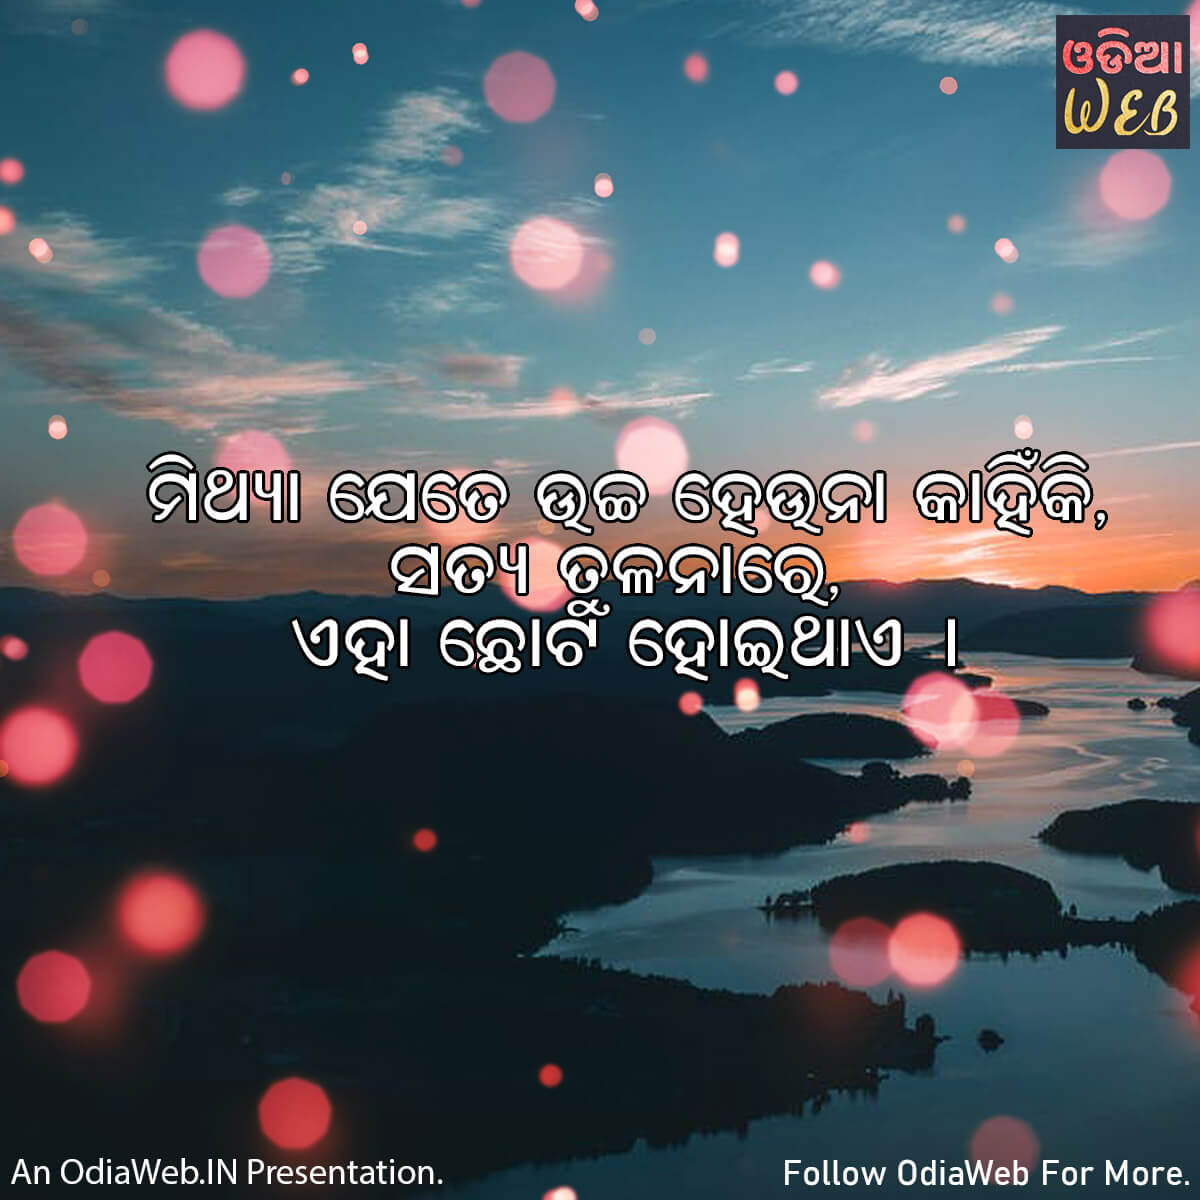 Odia Dedications Quotes1